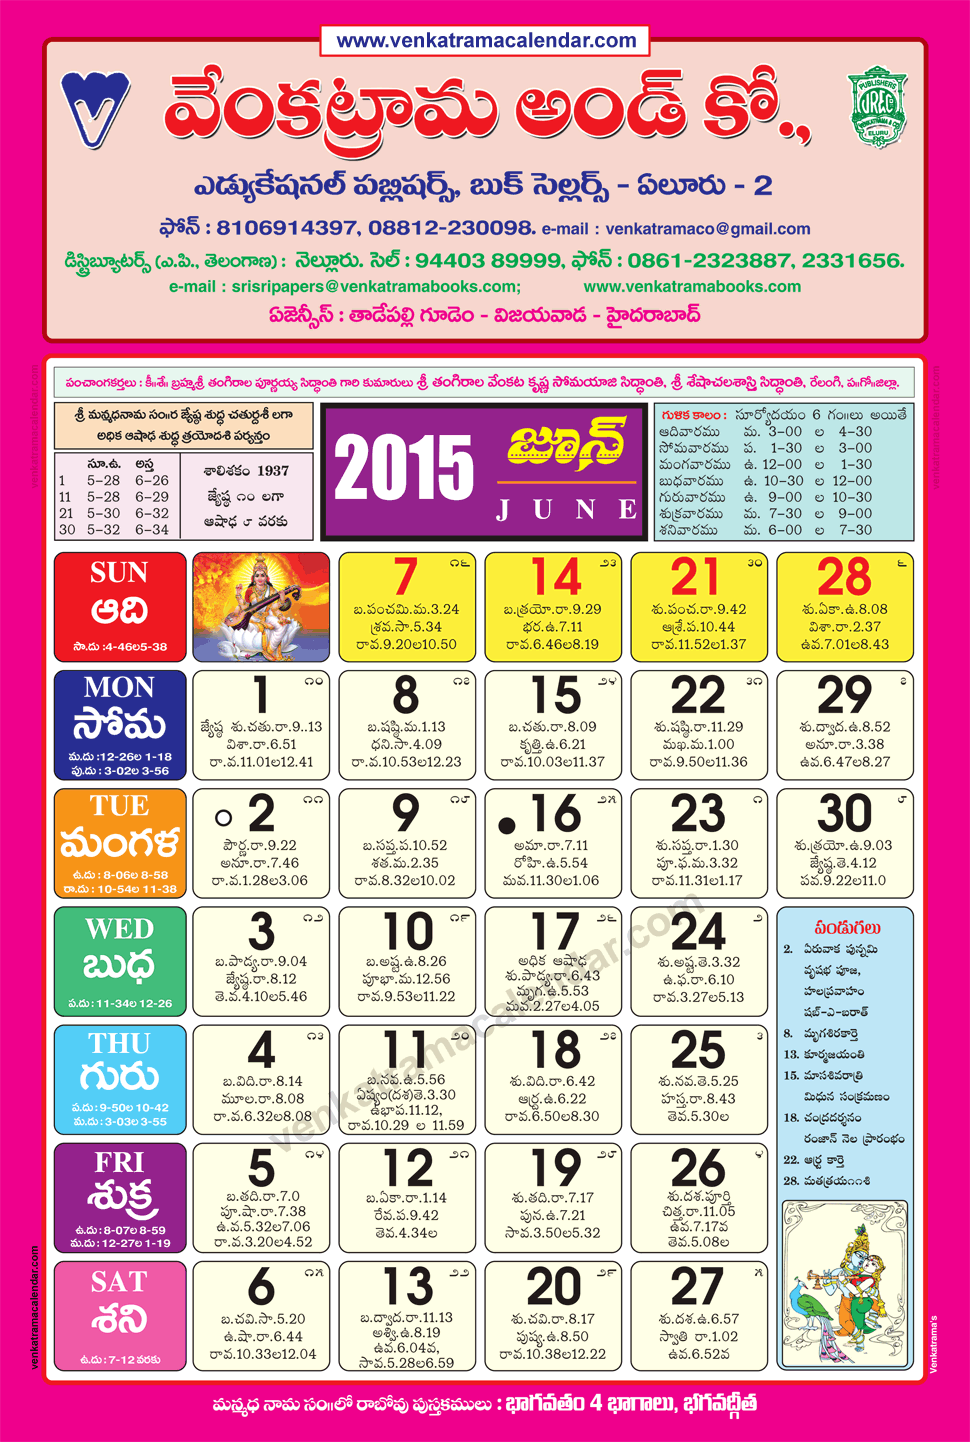 June Telugu Calendar : June venkatrama co multi colour telugu calendar